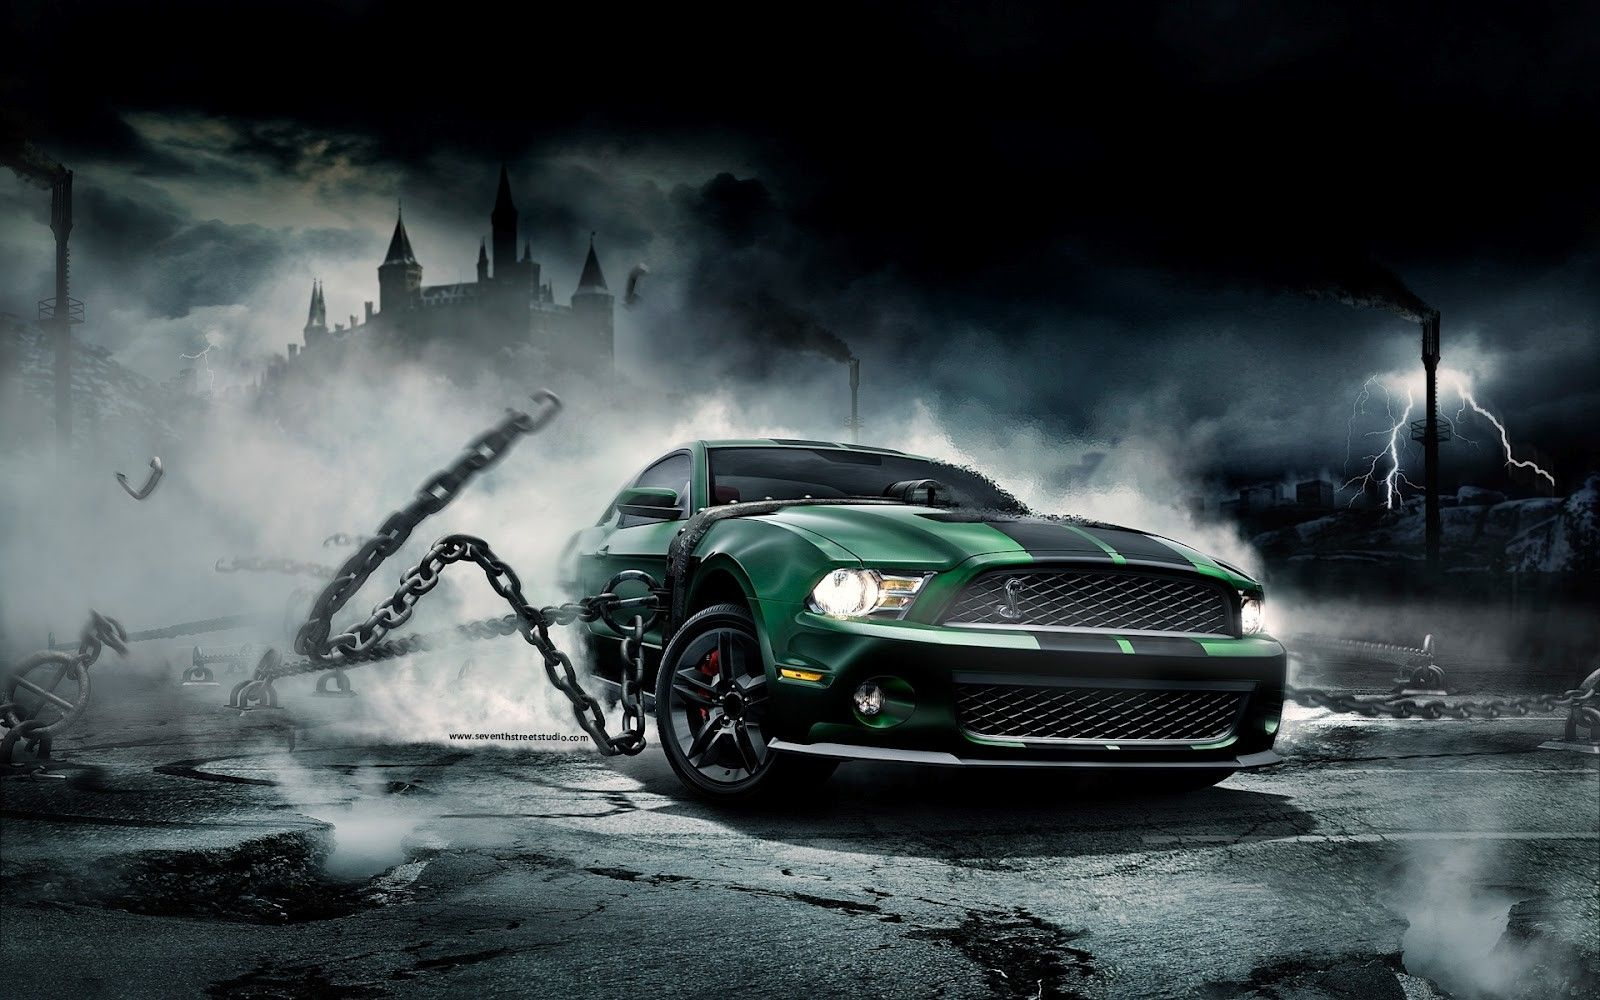 Hd Wallpapers For Pc With Images Ford Mustang Wallpaper